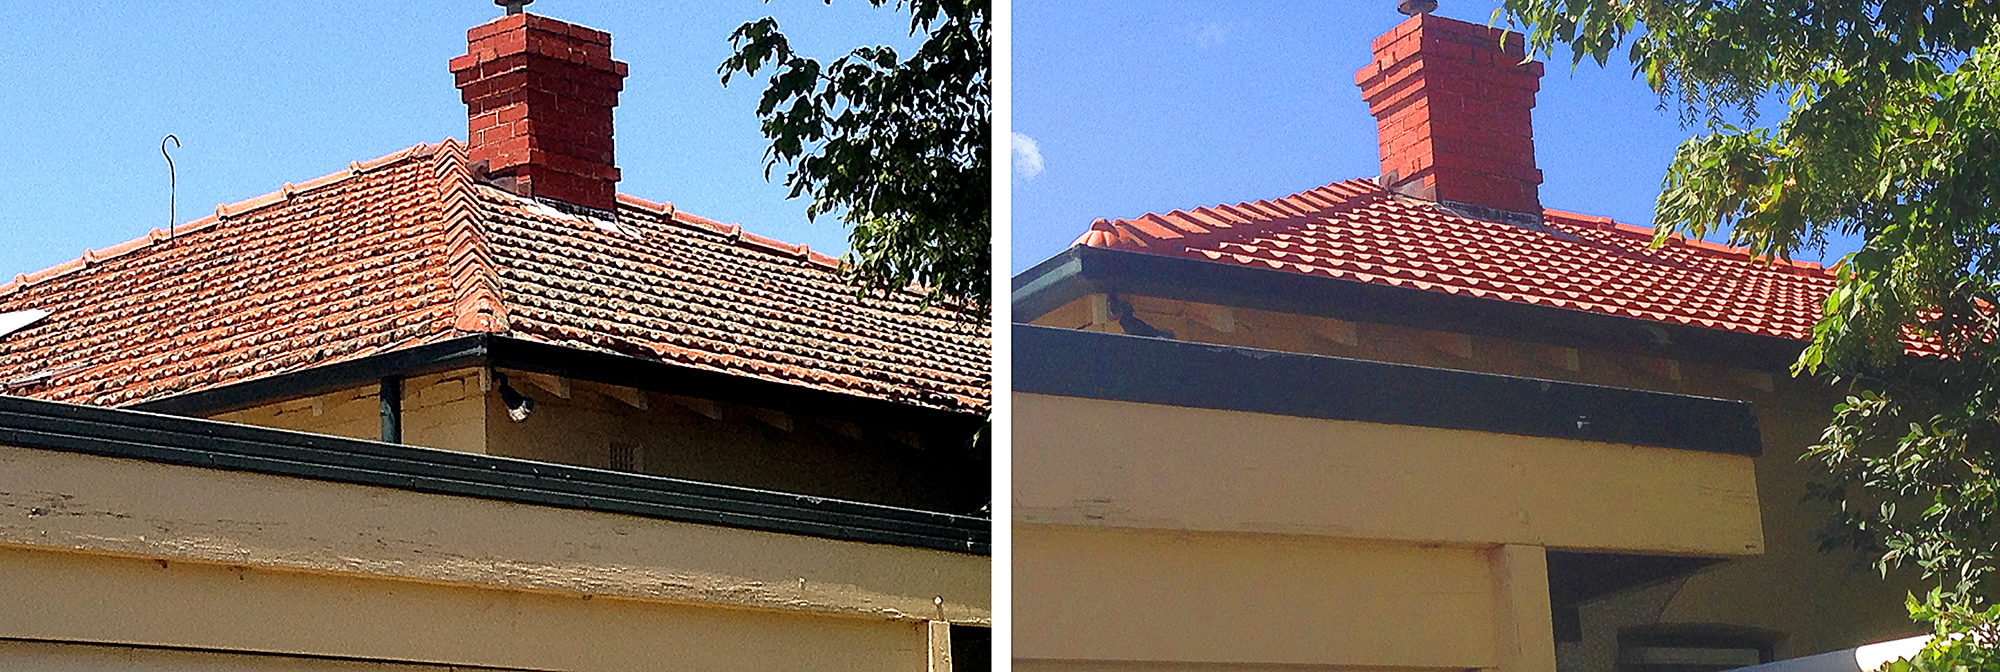 roof-tiling-before-and-after